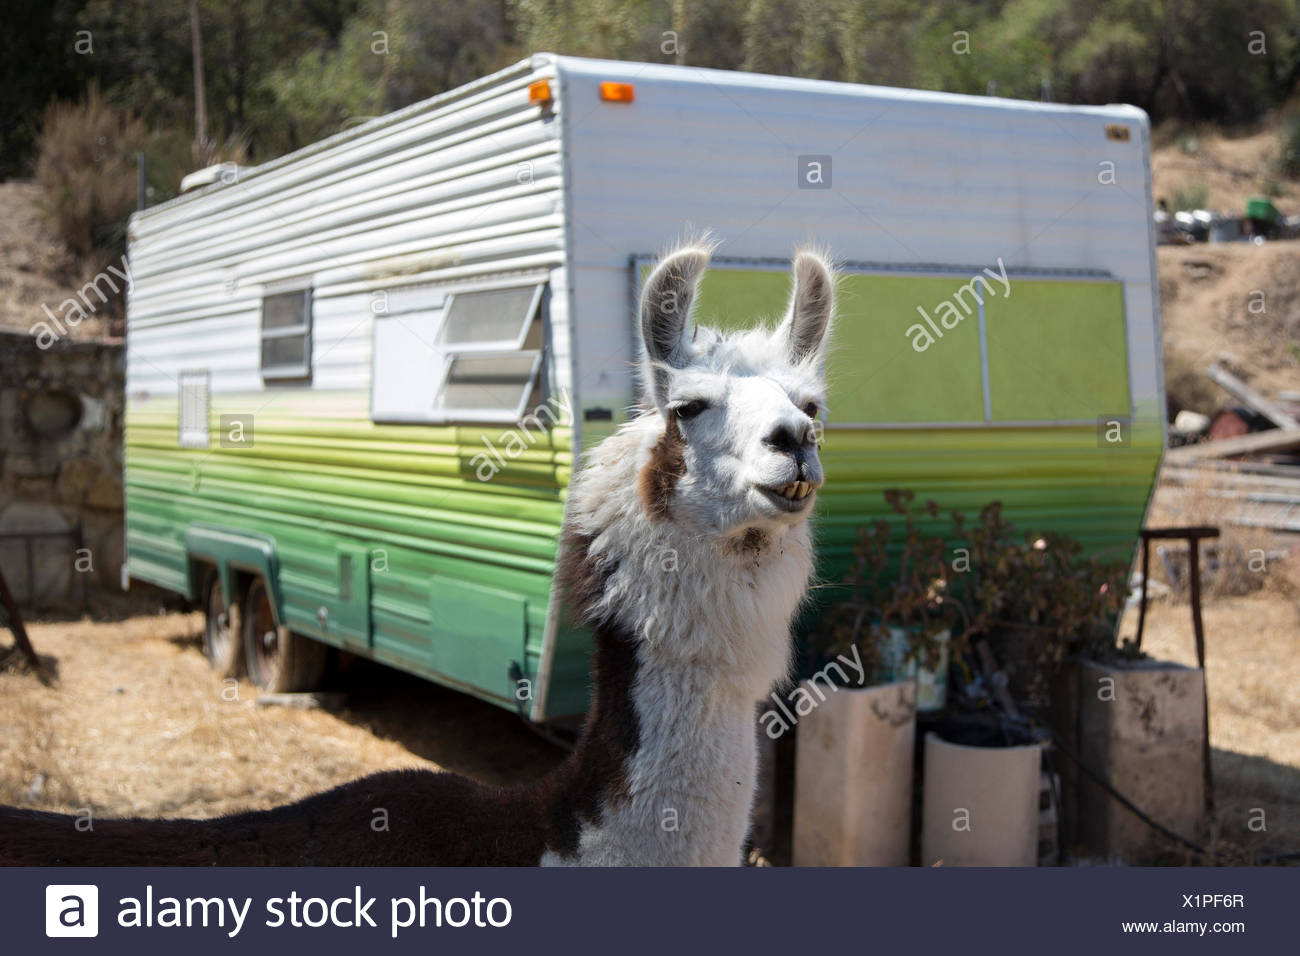 A llama in front of a trailer in Altadena, Calif. - Stock Image